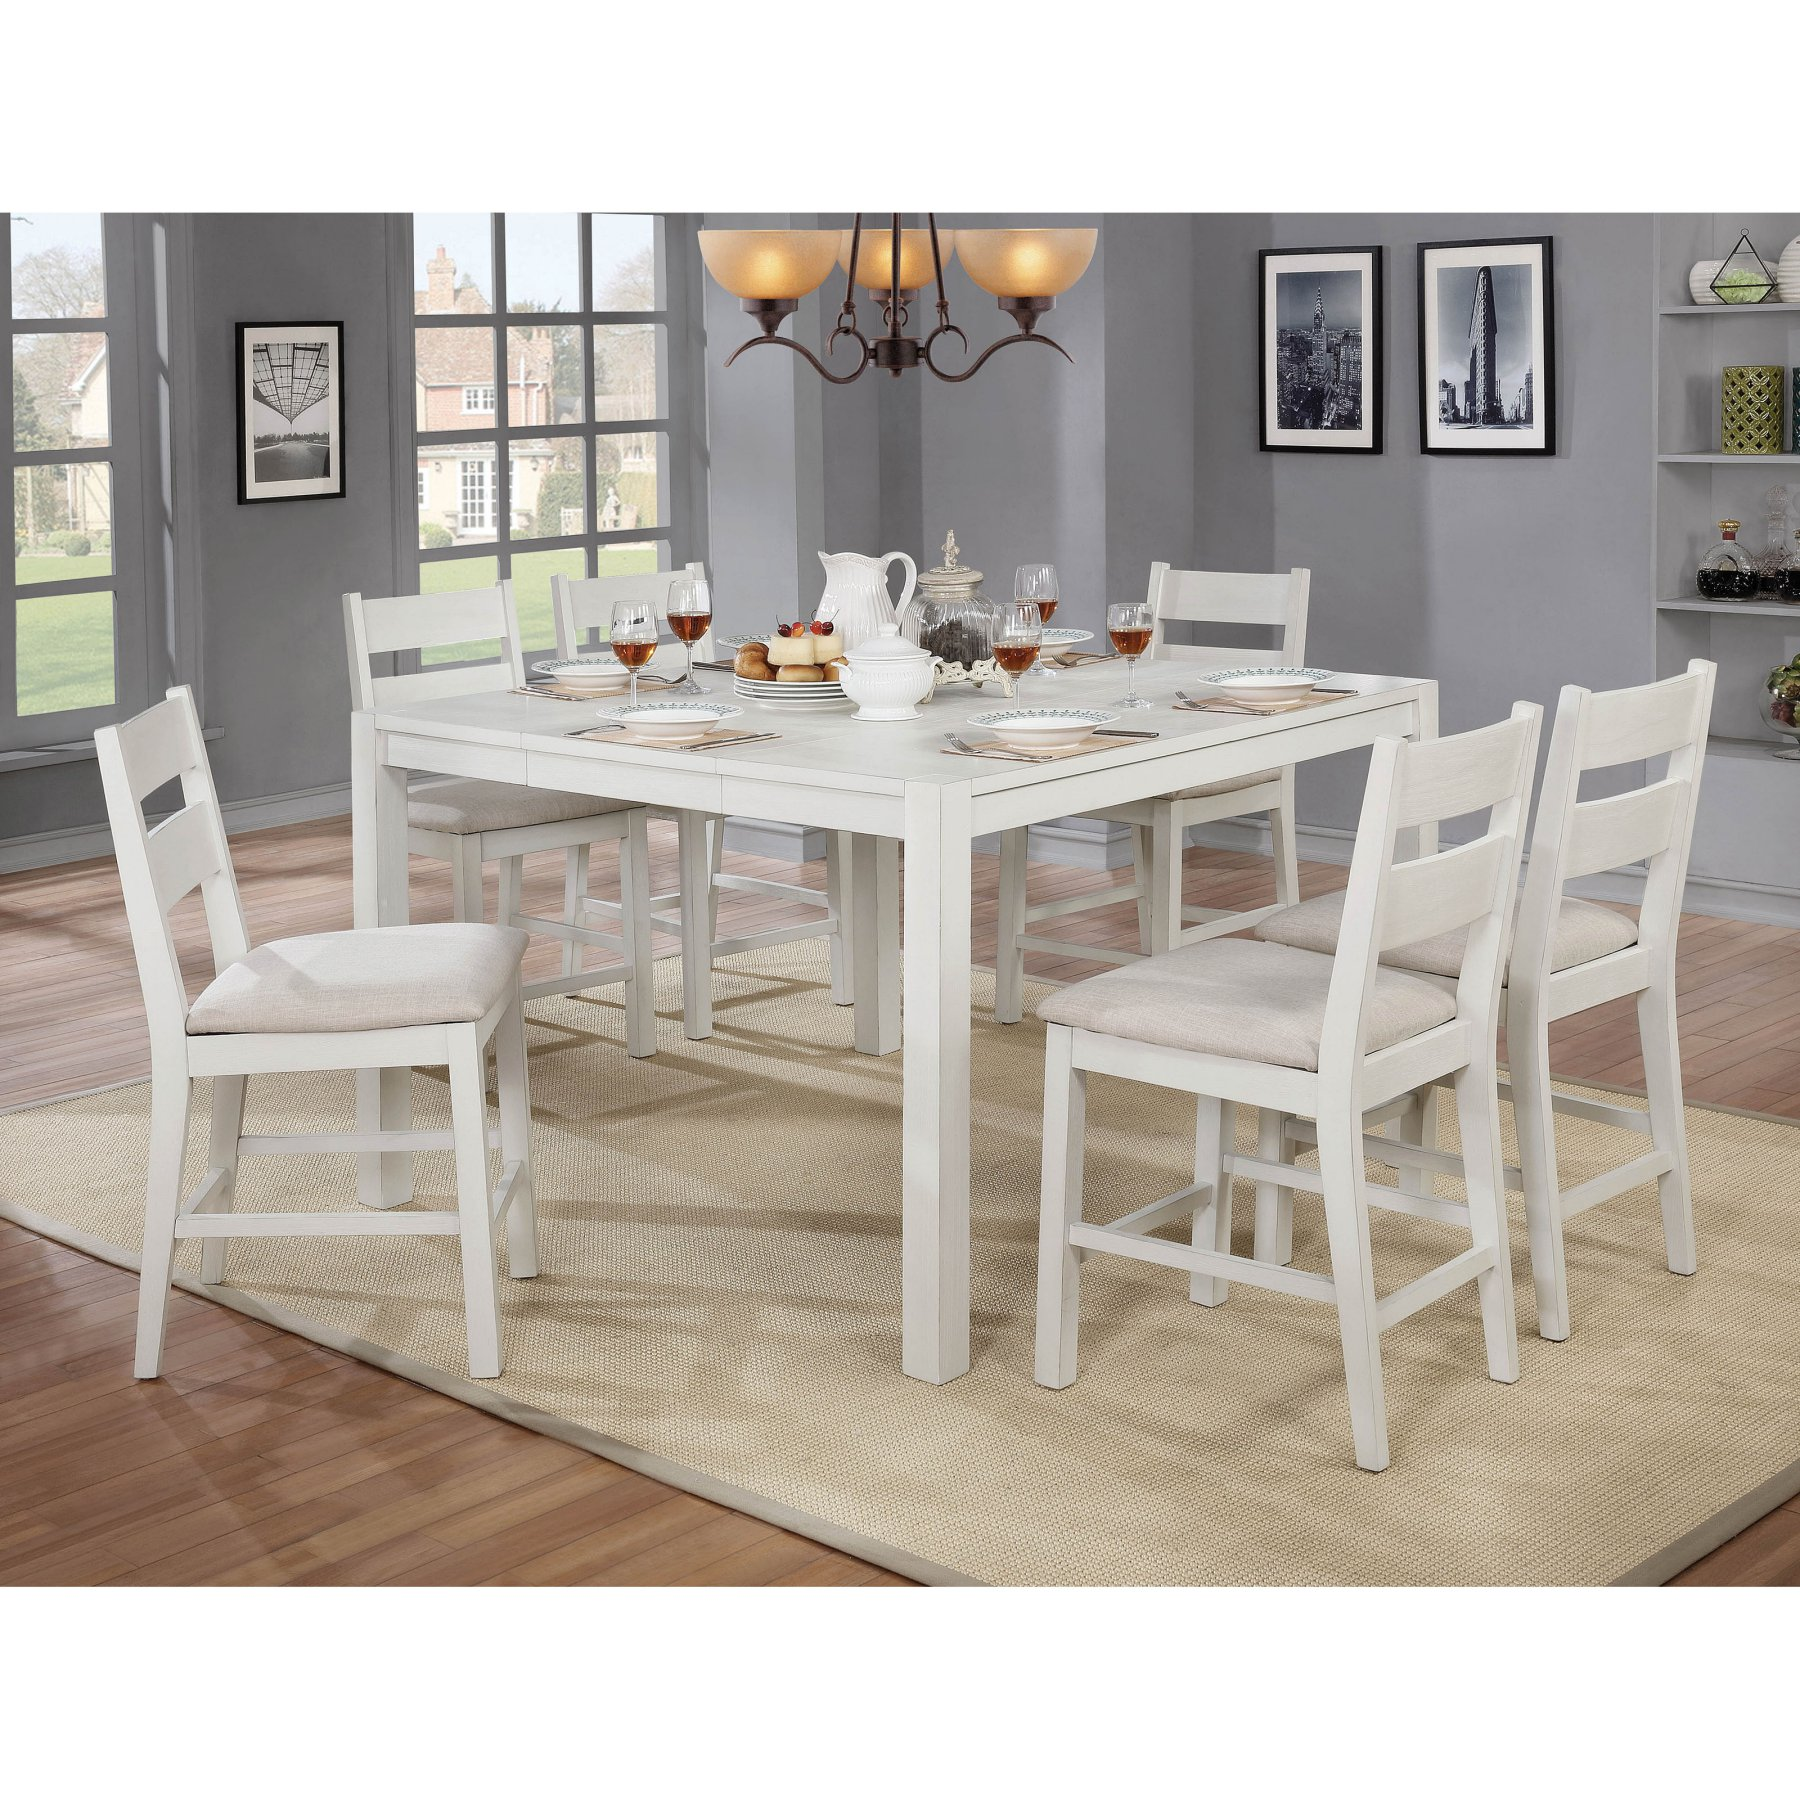 Furniture Of America Galveston 7 Piece Rustic Counter Height Extension